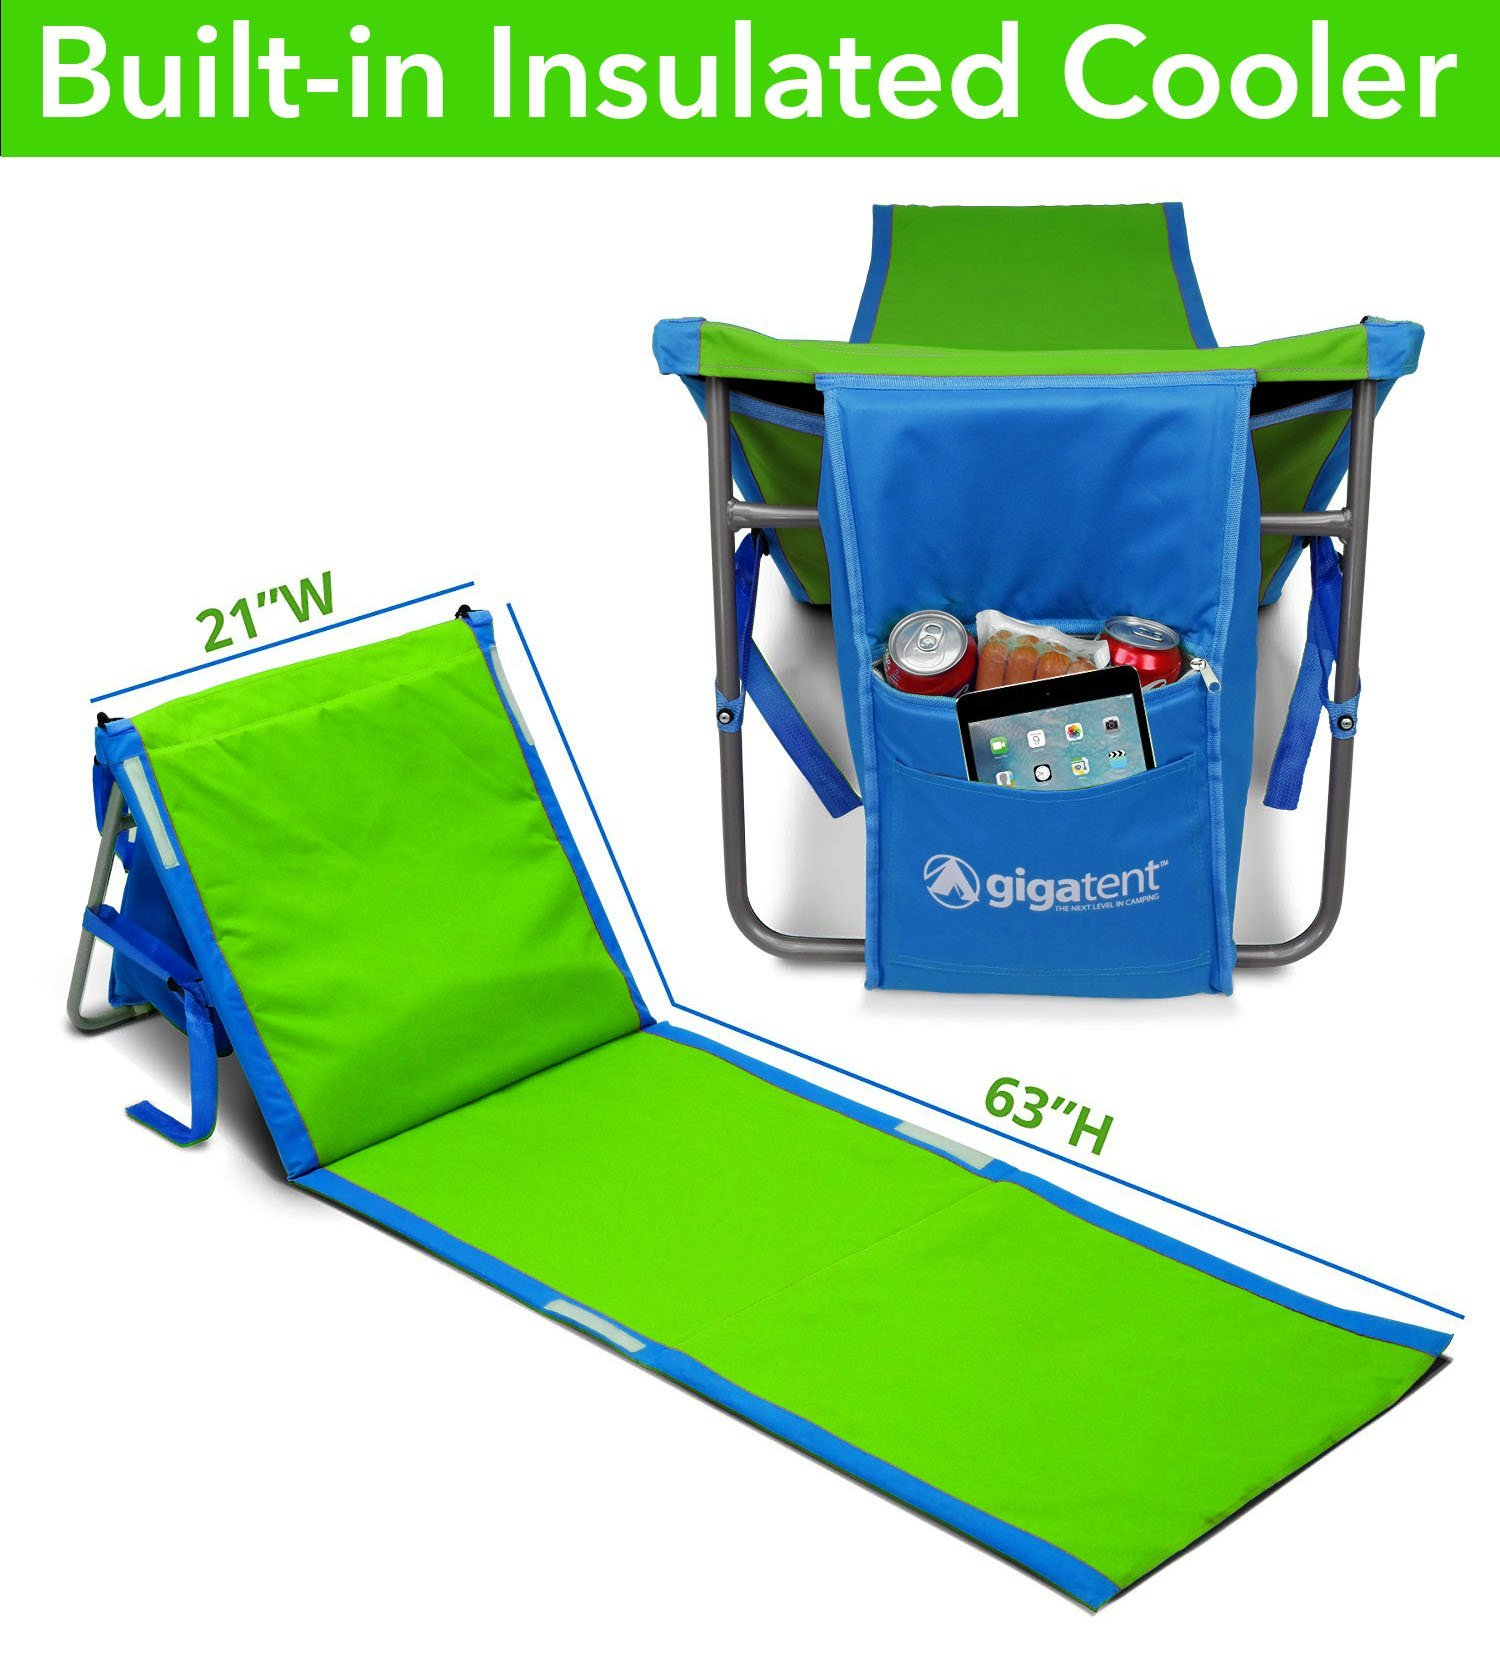 GigaTent Portable Beach Lounge Chair Mat with Insulated Cooler and Storage Pocket - Lightweight, Foldable, Comfortable Shoulder Carrying Strap